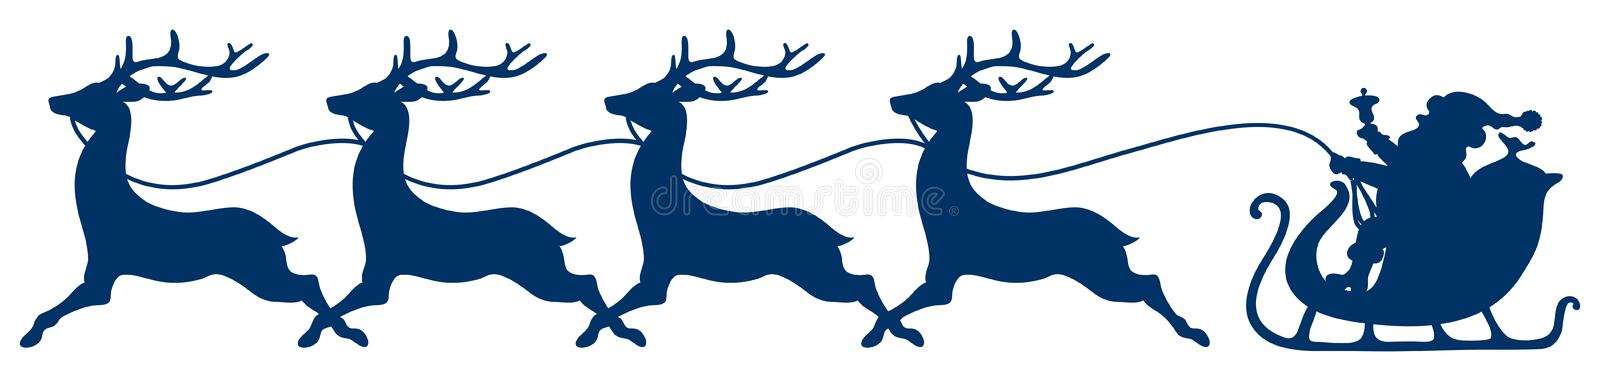 Noël bleu-foncé Sleigh Santa And Four Running Reindeers illustration de vecteur